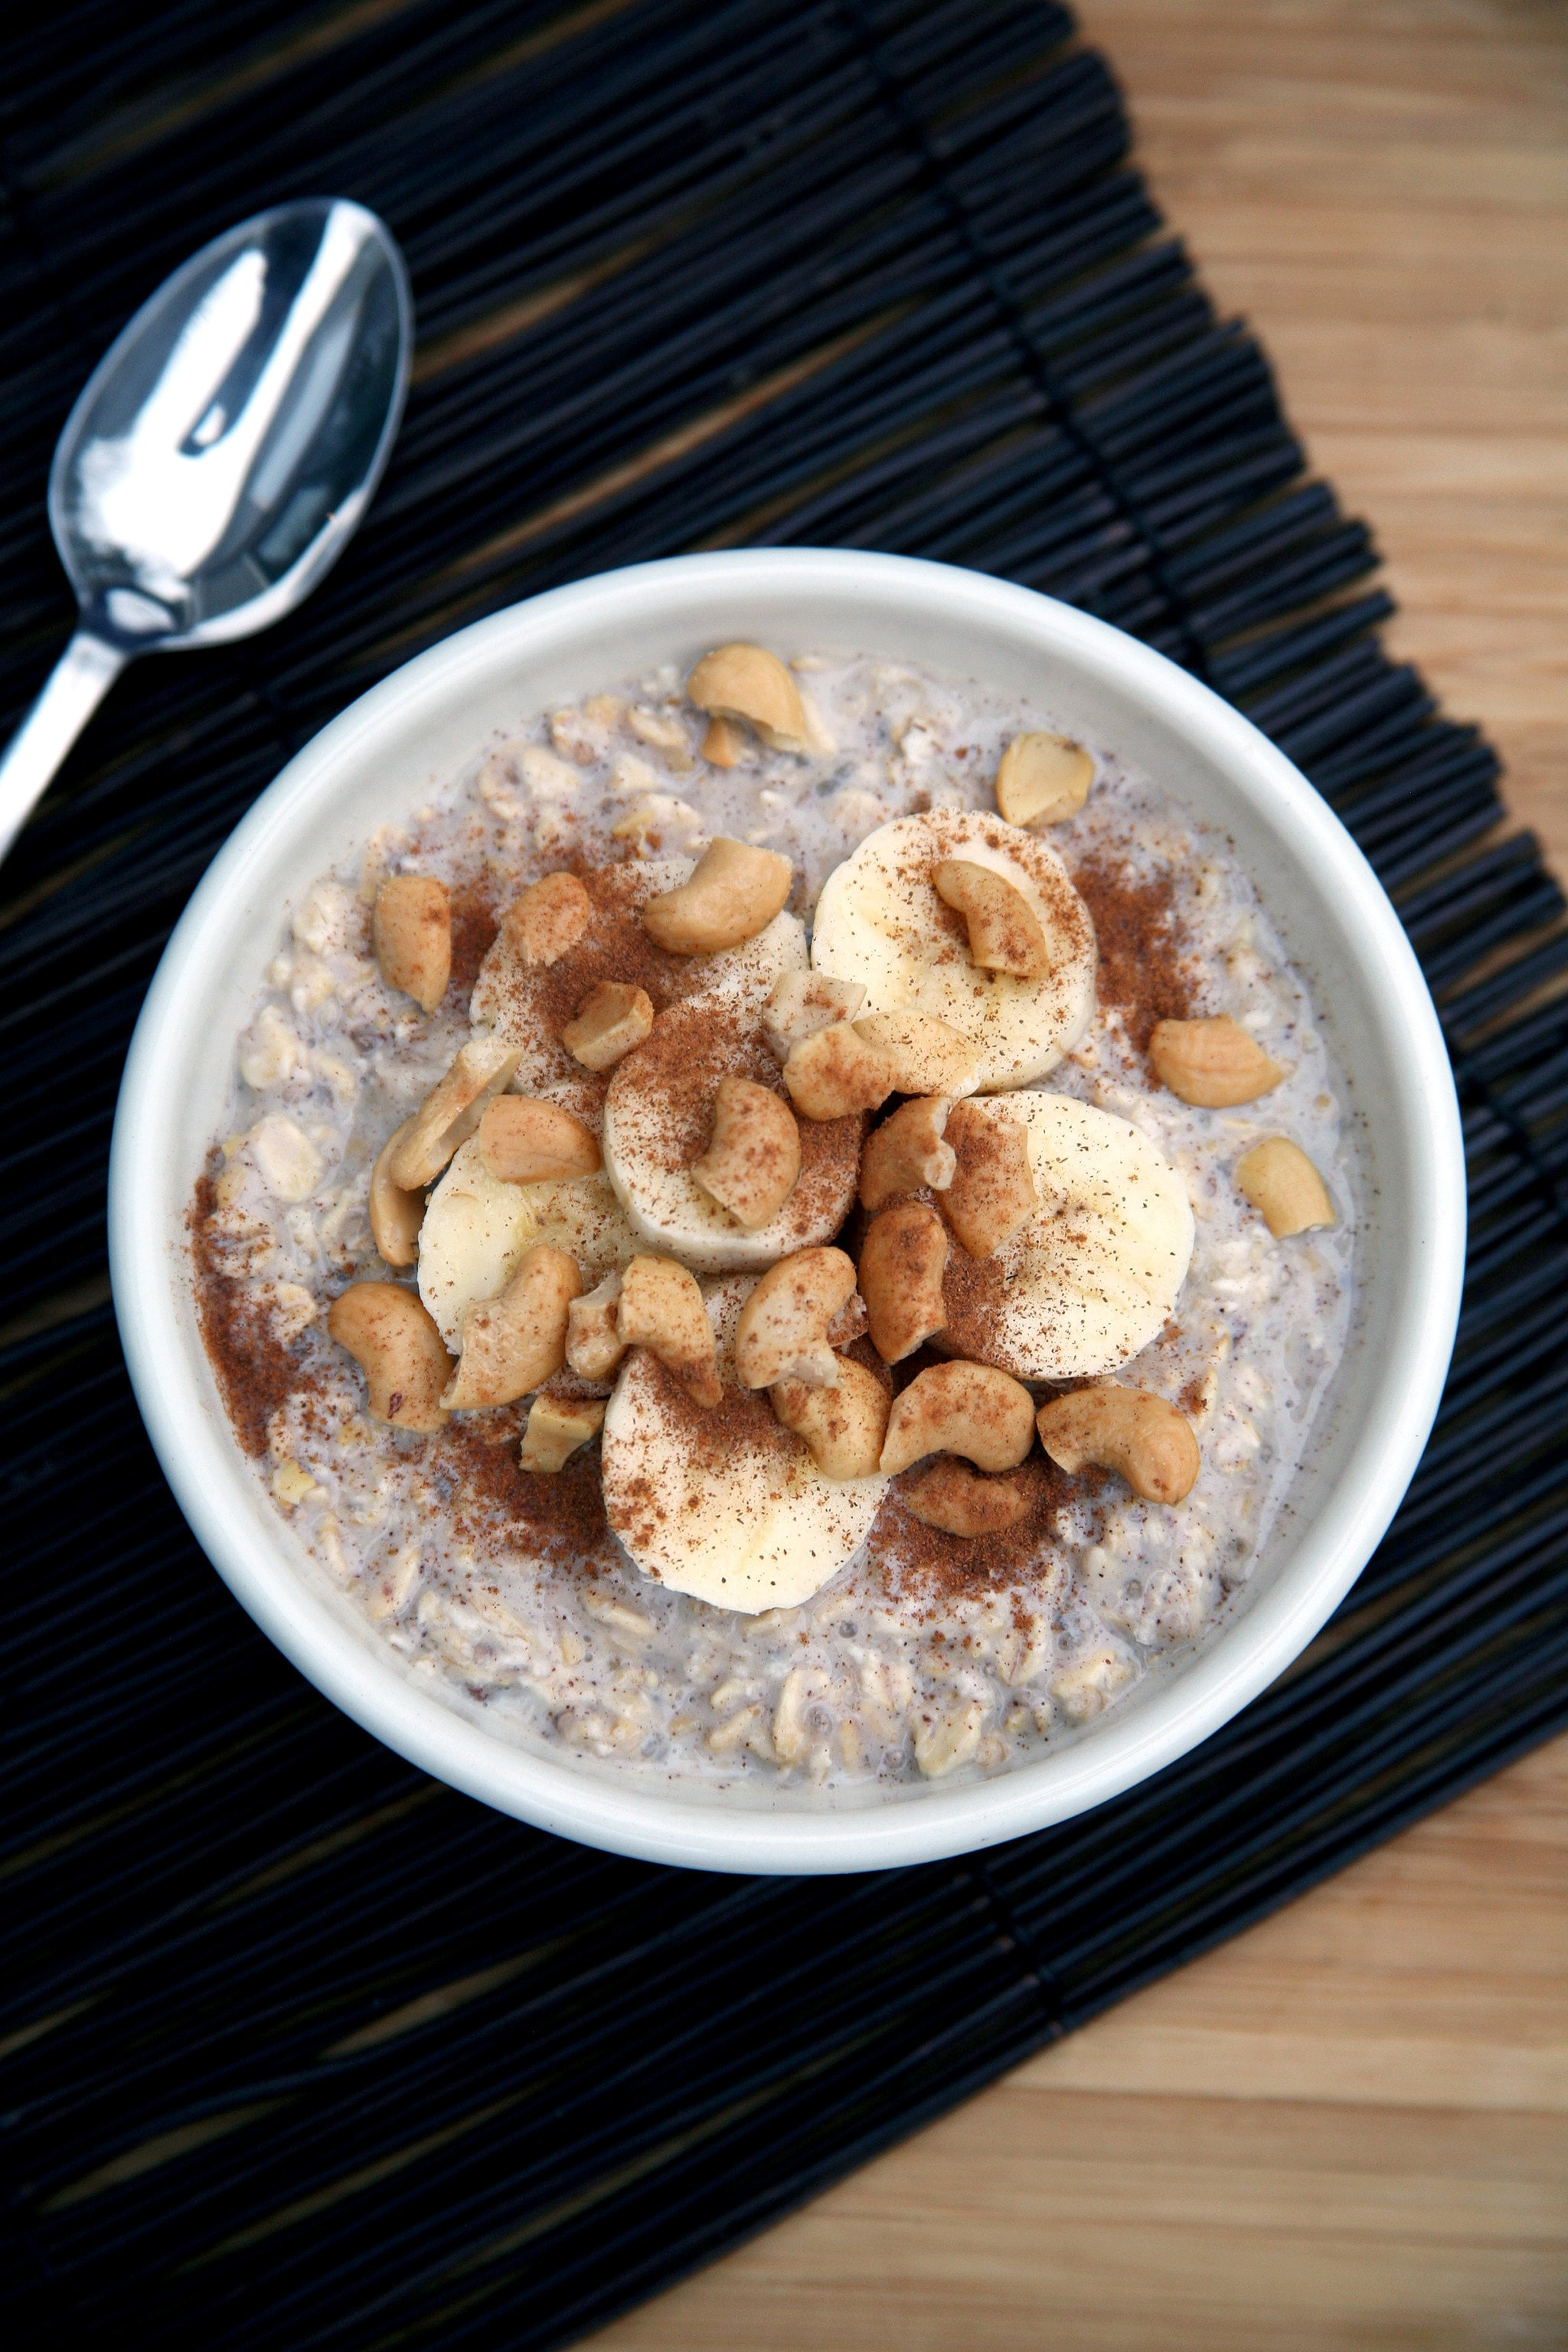 Fast Food Places With Healthy Breakfast Options